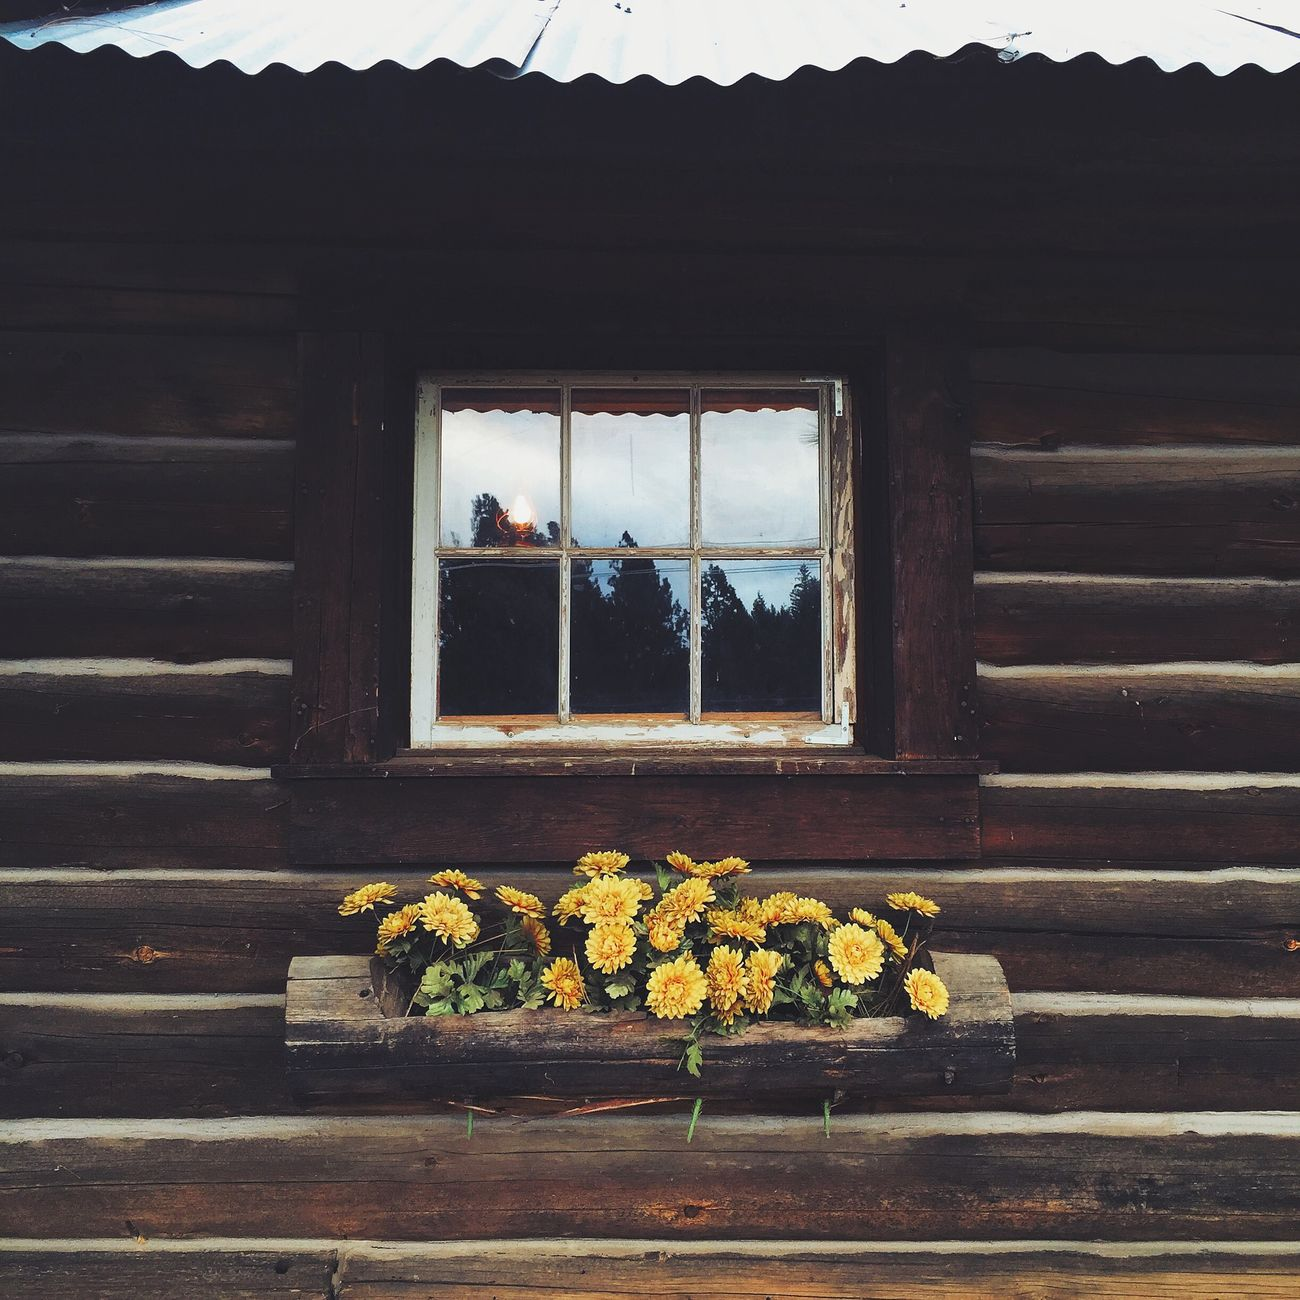 First Larsen family cabin. 1860 Plastic Flowers Applehill California Tin Roof Wood Cabin VSCO Vscocam